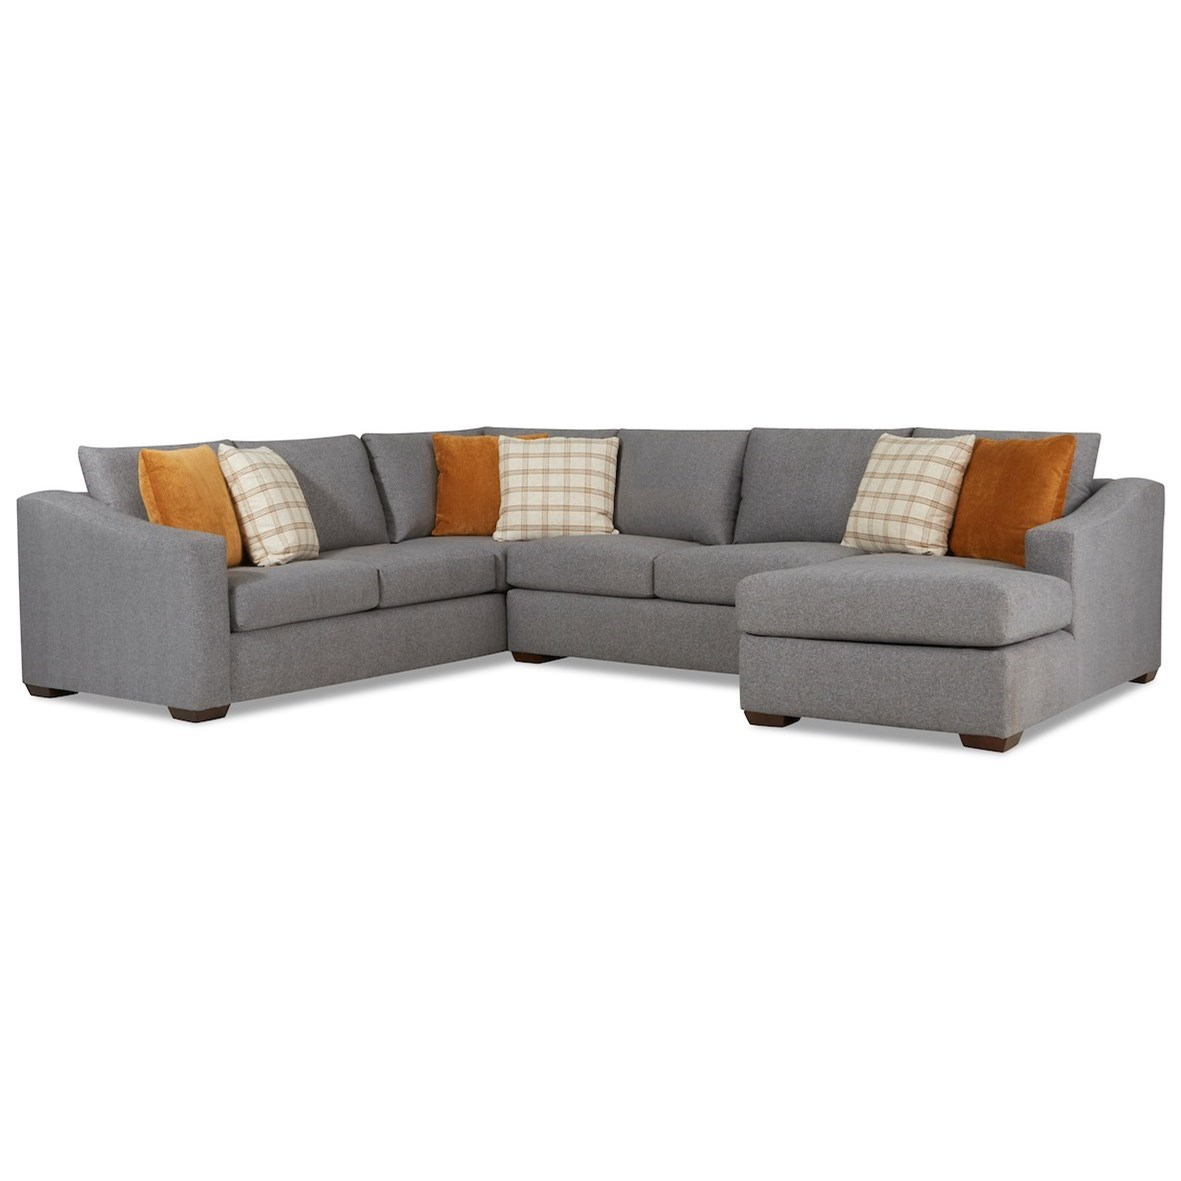 Demi 5-Seat Sectional Sofa w/ RAF Chaise by Klaussner at Johnny Janosik